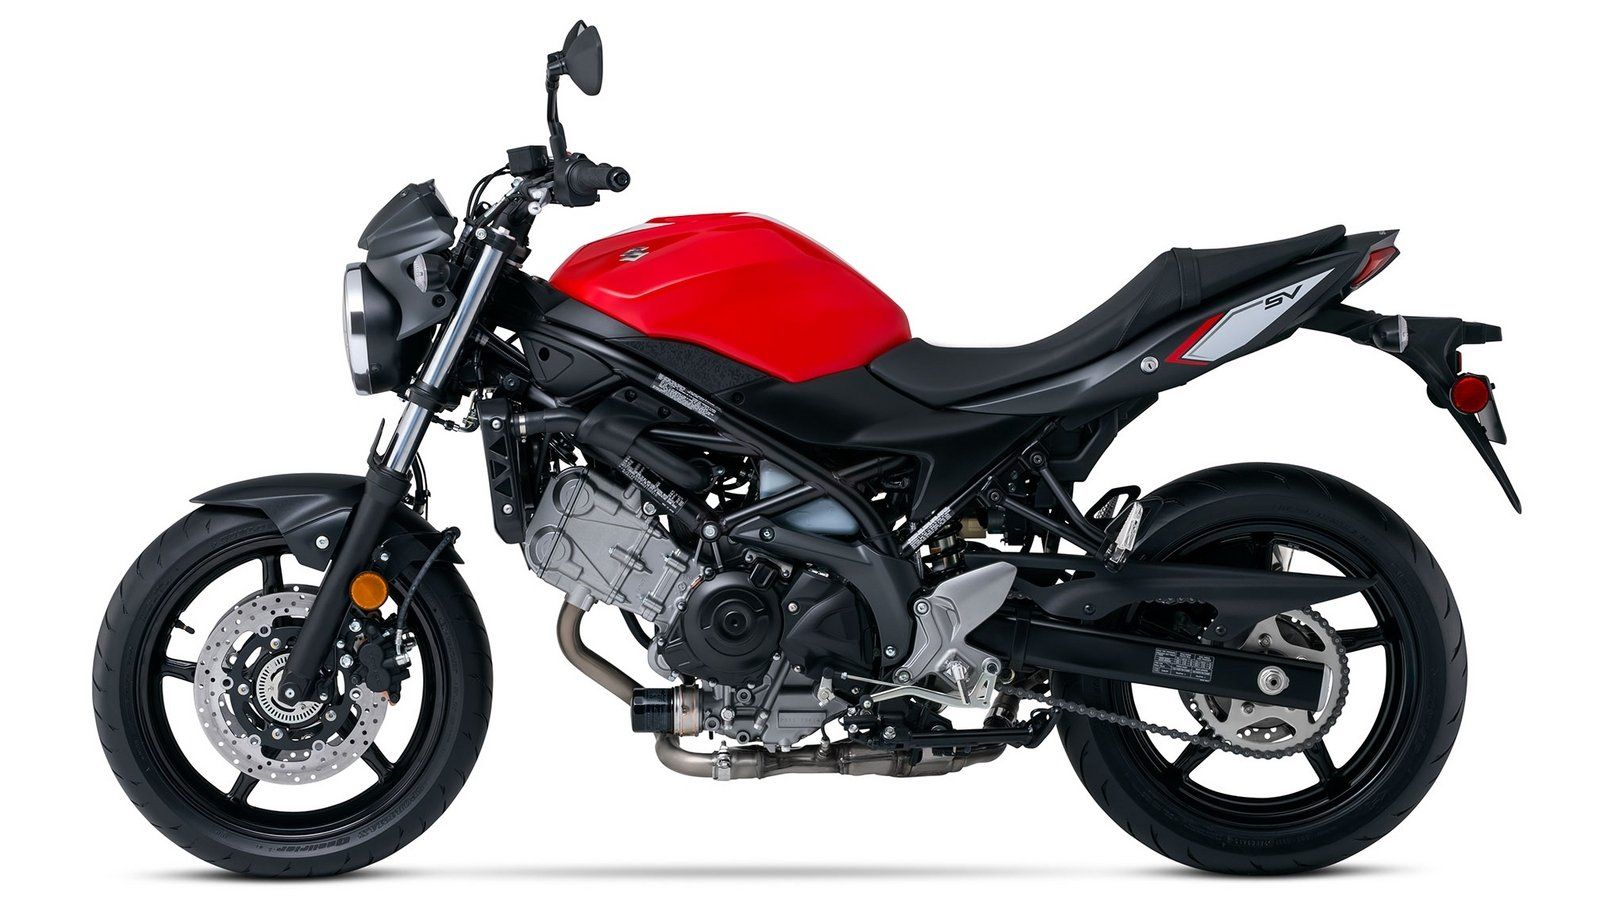 2017 suzuki sv650 abs picture 664032 motorcycle review. Black Bedroom Furniture Sets. Home Design Ideas